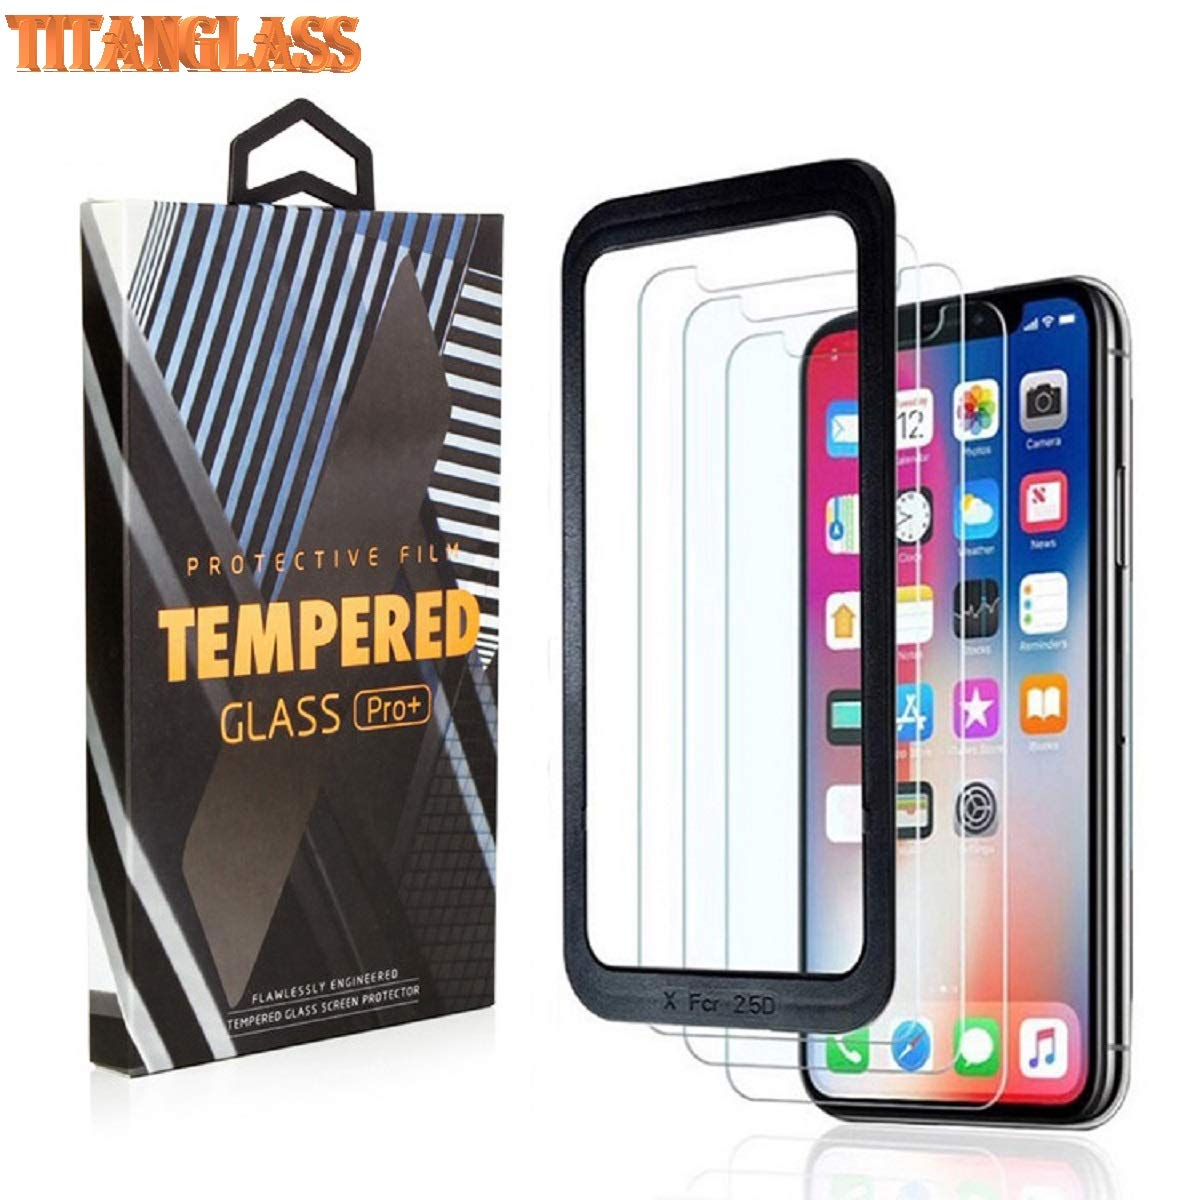 TitanGlass,3-PackTempered Glass Screen Proctector HD Clarity 0.25mm for iPhone Xs Max Anti Scratch with Alignment Frame